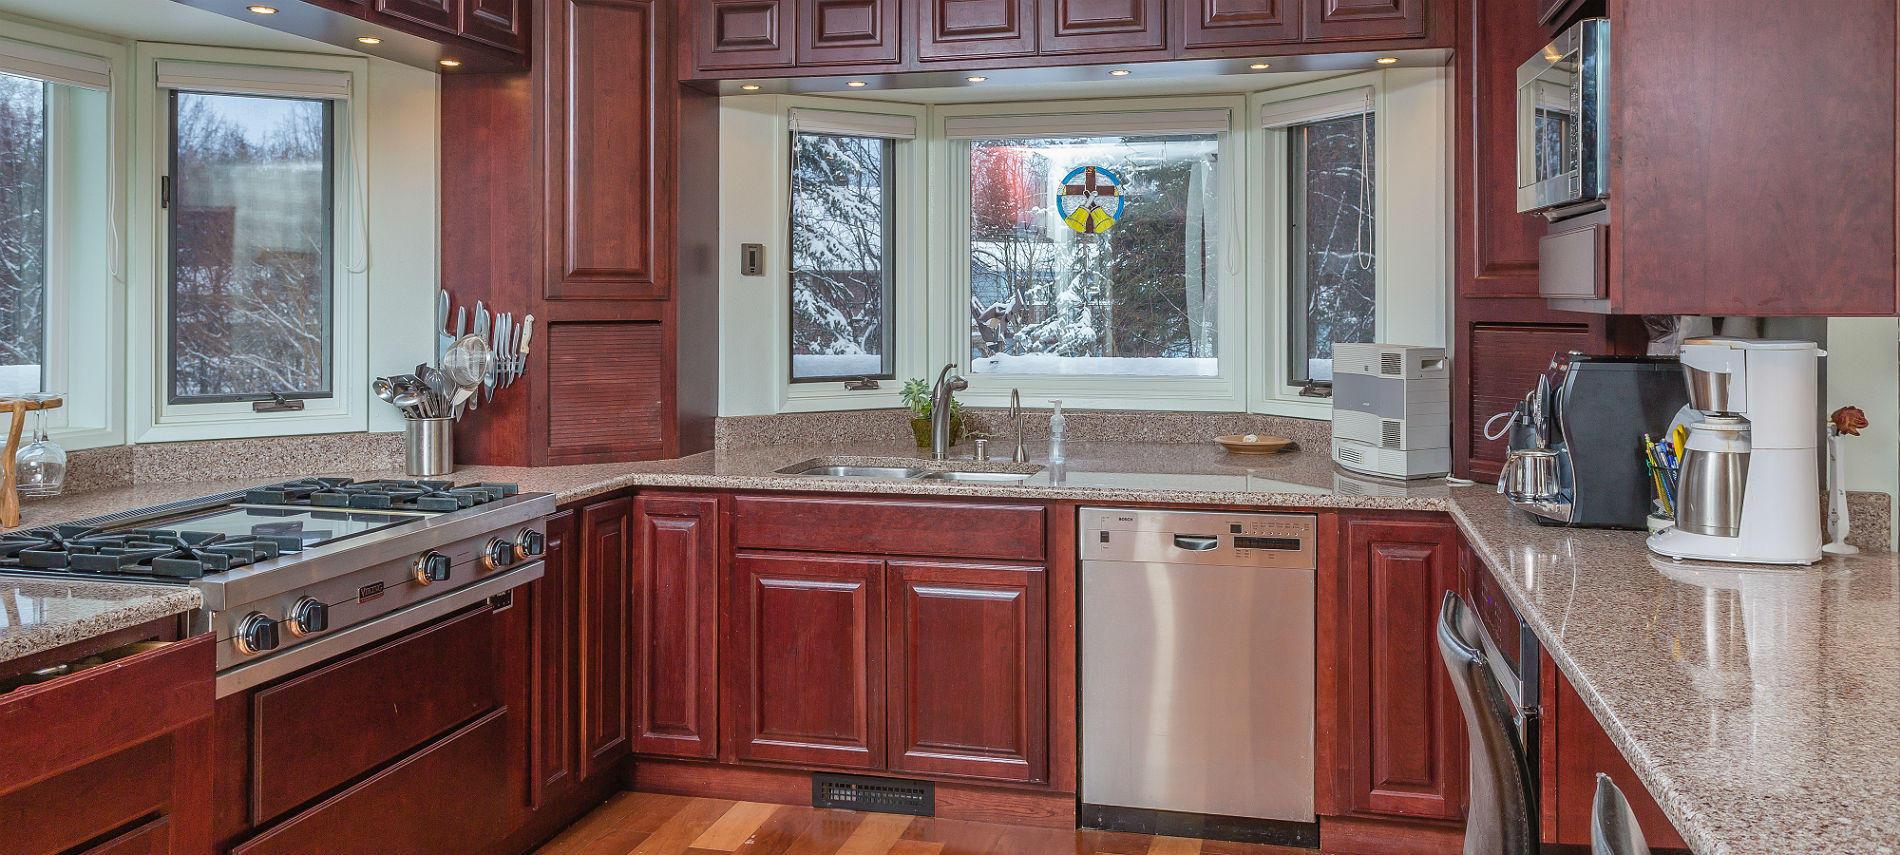 Kitchen with stainless steel appliances and cherry cabinets on all sides, bay windows, marble counters, wood floor.